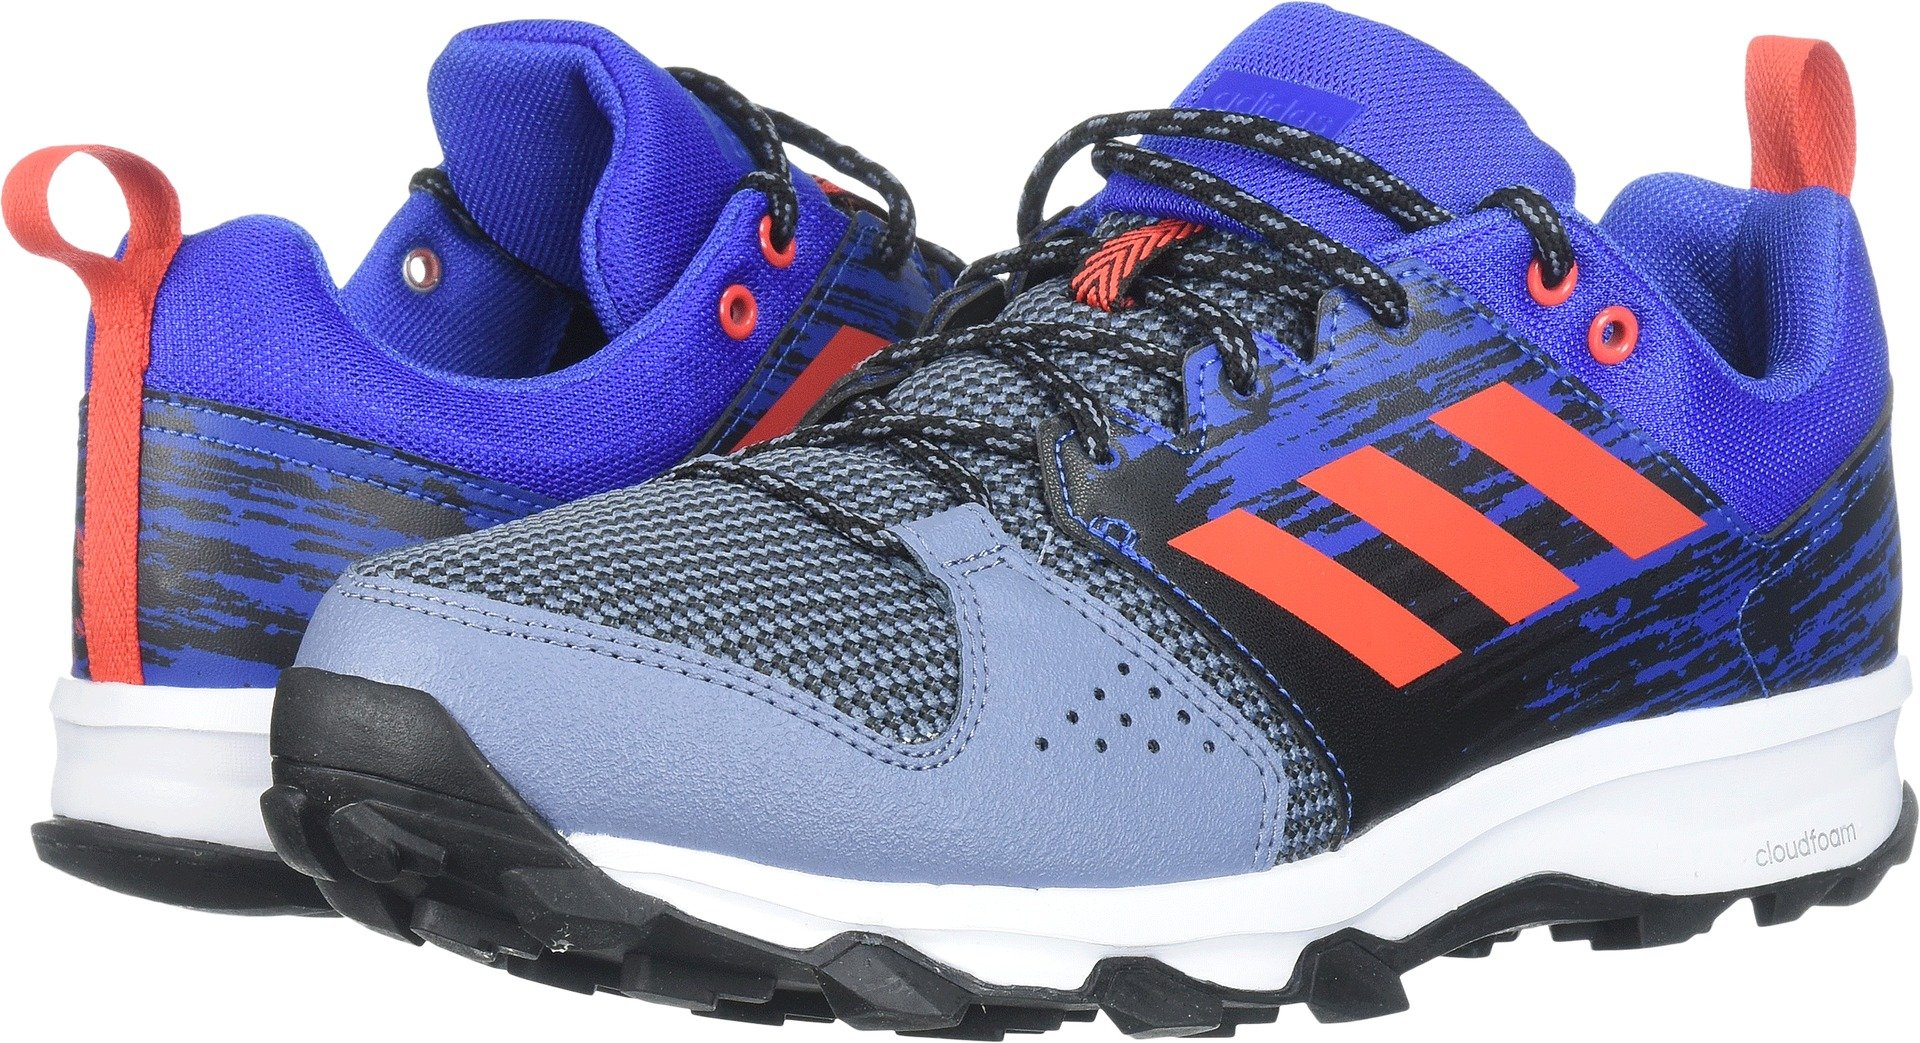 adidas Men's Galaxy Trail m Running Shoe, Raw Steel/Hi-Res Red/Hi-Res Blue, 11 M US